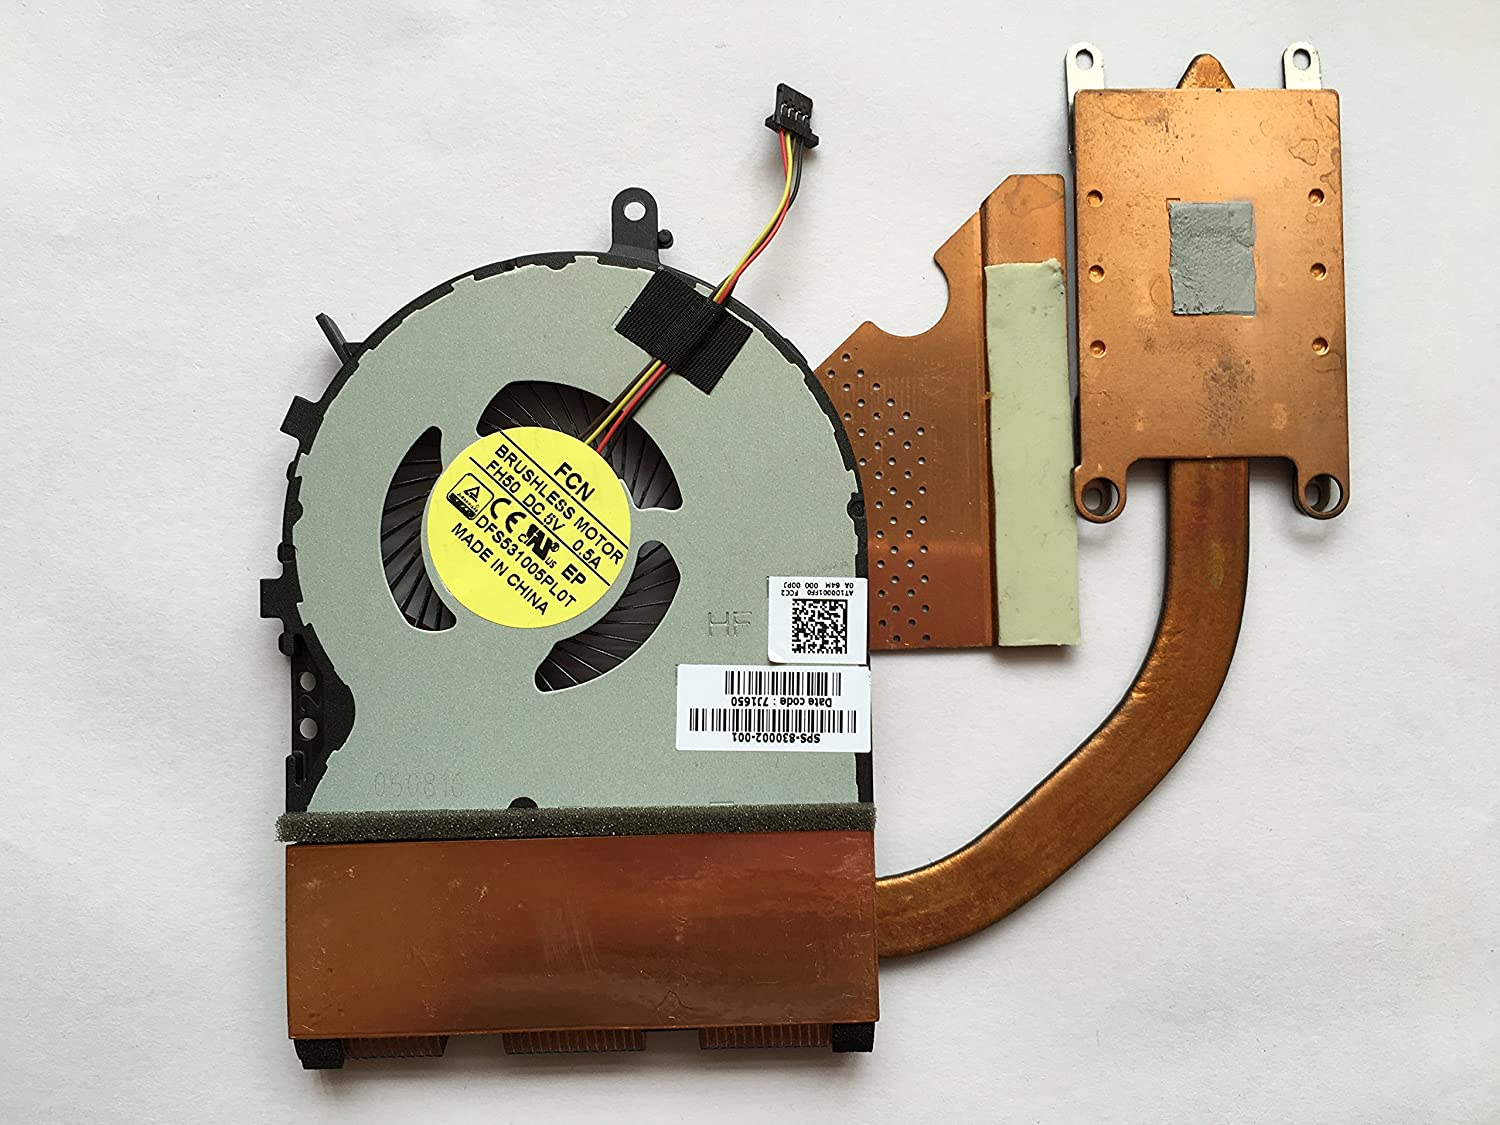 HK-Part Replacement Fan for HP Envy 15T-AE 15T-AE100 Series CPU Cooling Fan with Heatsink 4-Pin 4-Wire SPS 830002-001